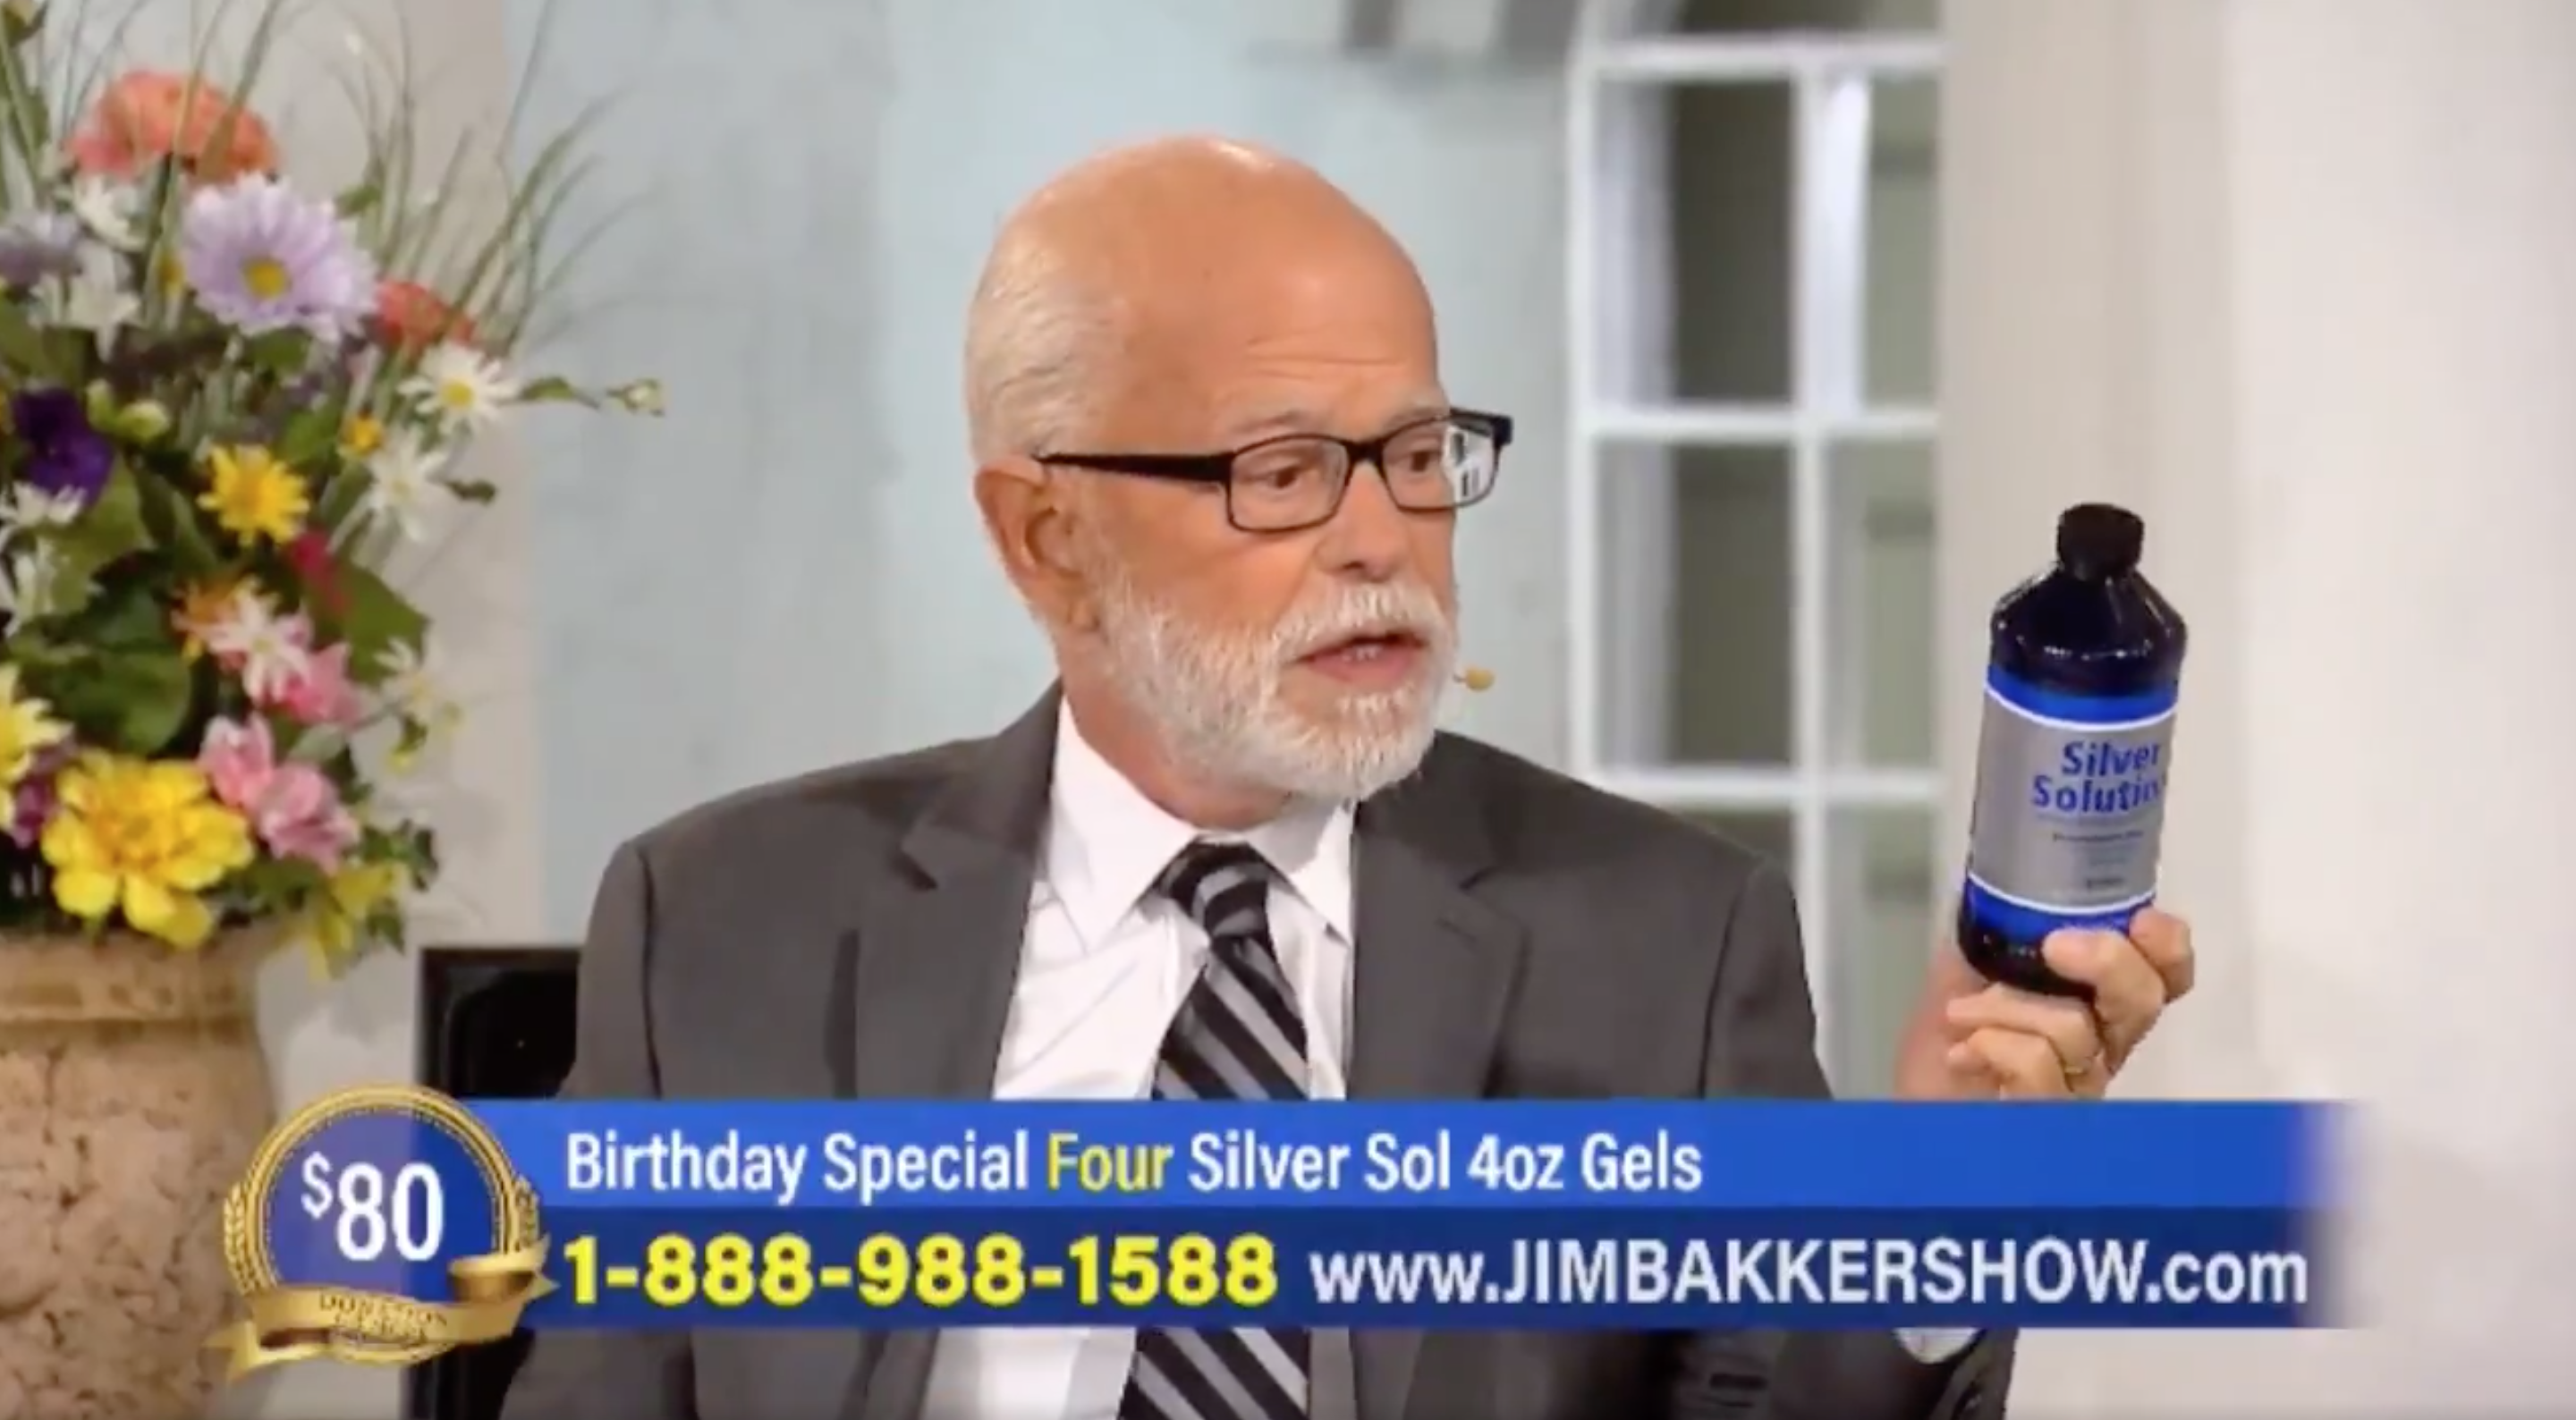 U.S. Government Warns Televangelist Jim Bakker Over Claims 'Silver Solution' Kills Coronavirus